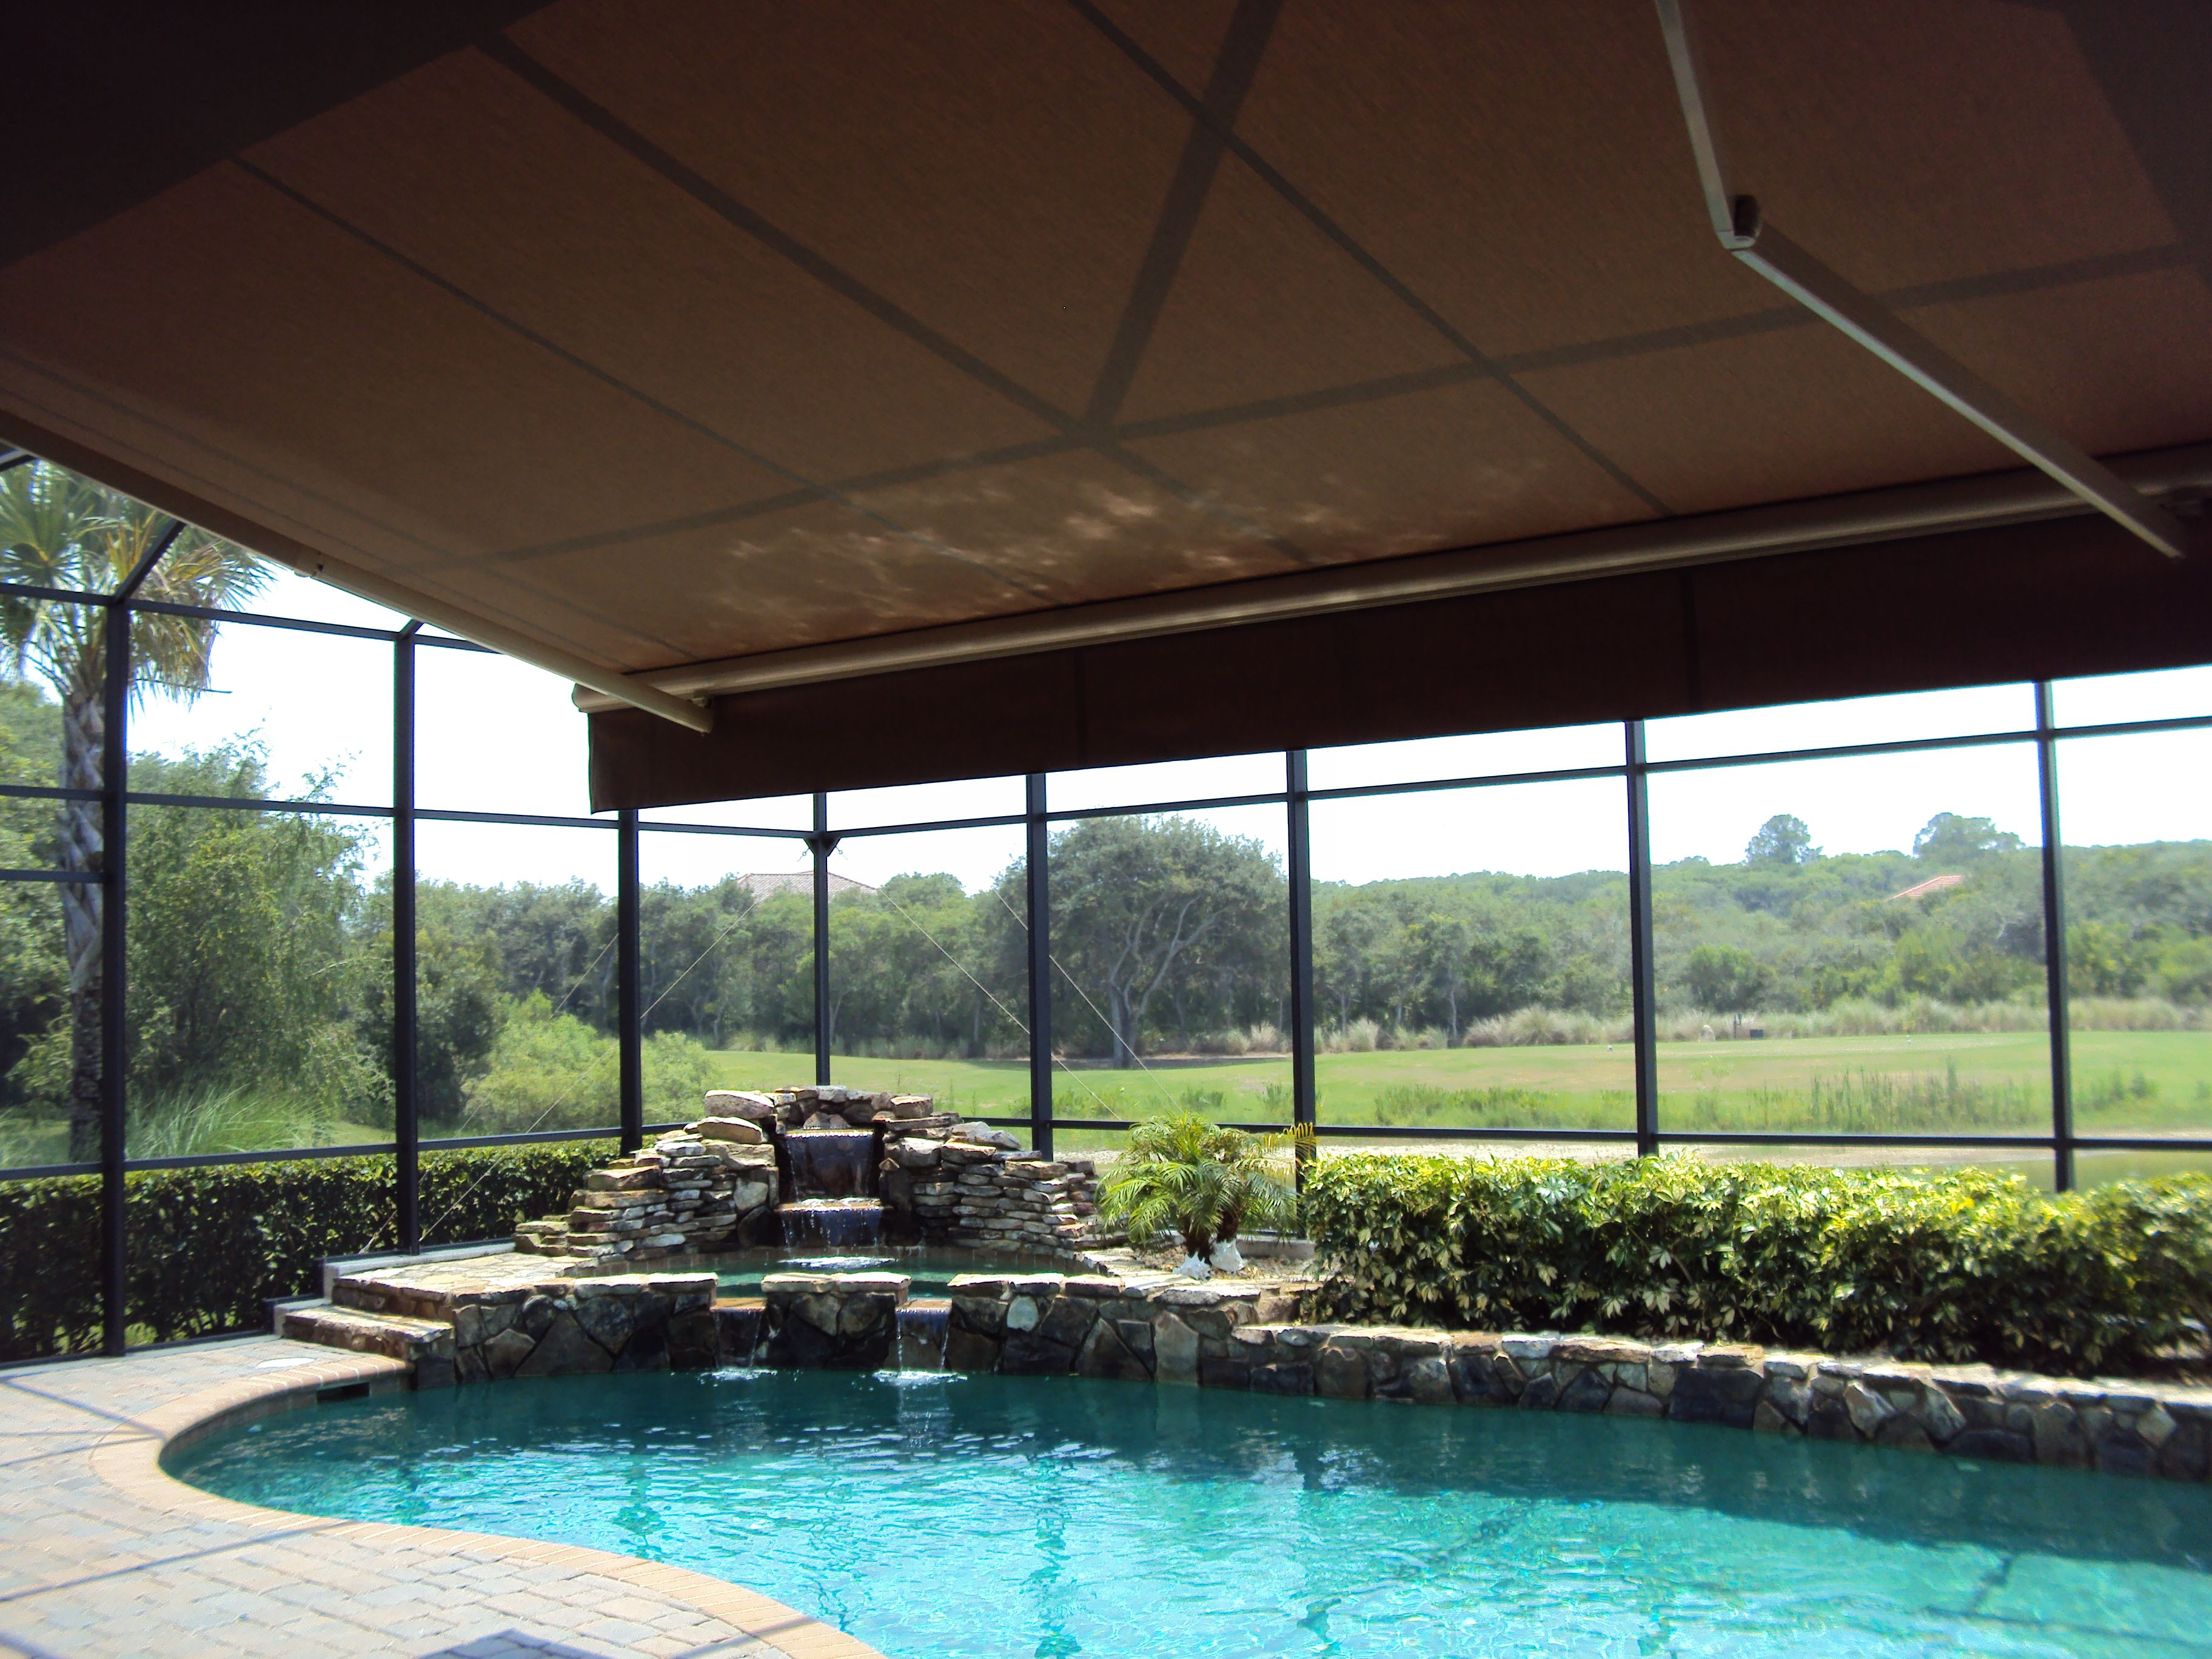 Swimming Pool Shade Ideas swimming pool shade structures pool sun shade greenline Patio Shades